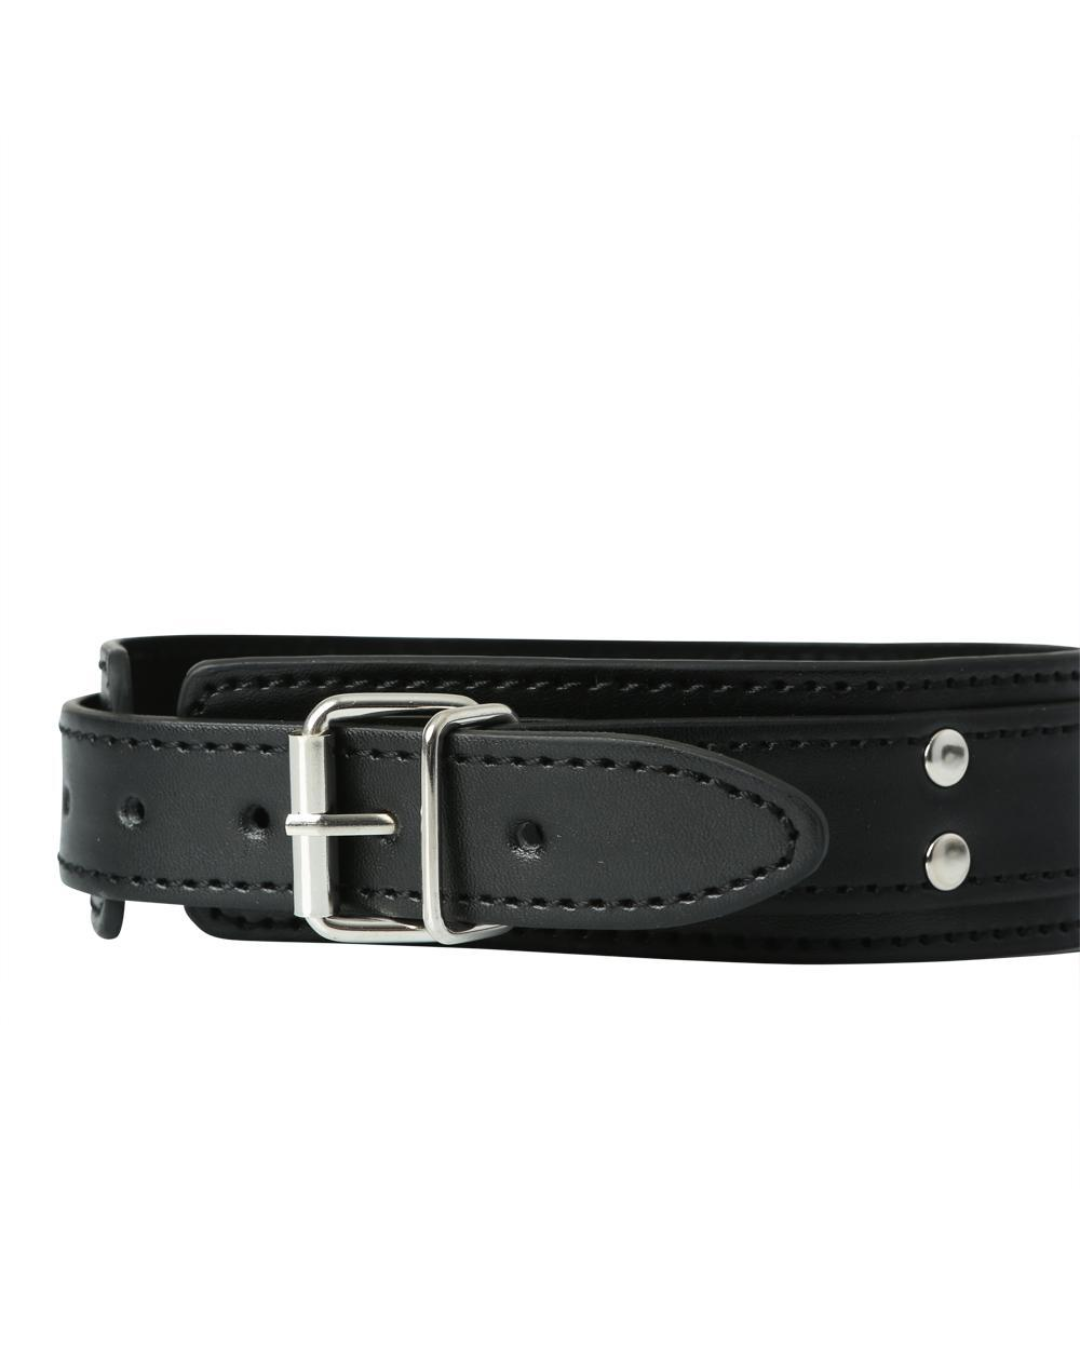 Vegan Leather Collar with Nipple Clamps by Sportsheets close up of the collar buckle